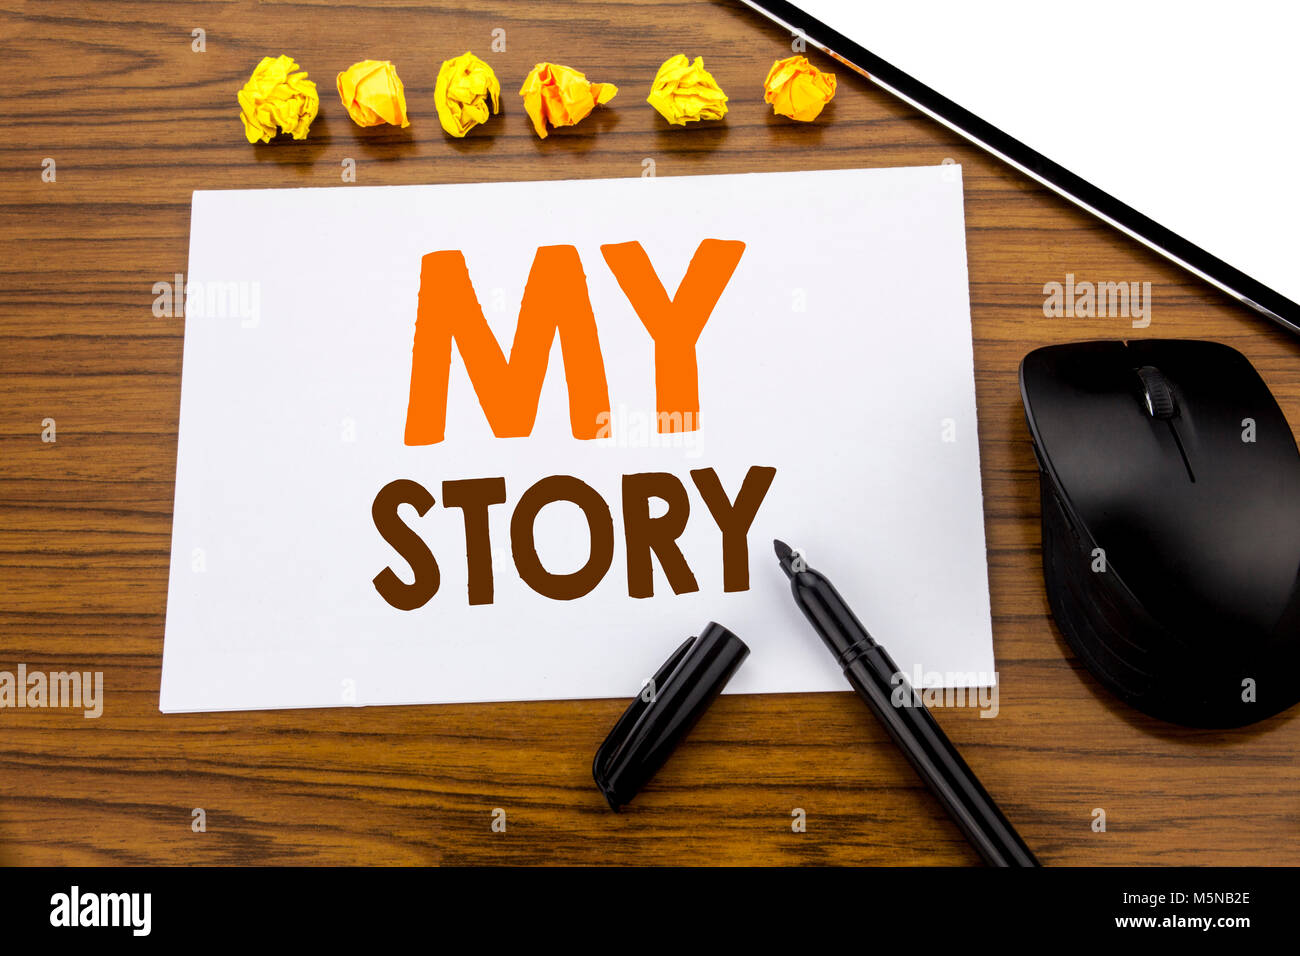 Conceptual hand writing text showing My Story. Business concept for Telling Tell About You written on sticky note - Stock Image